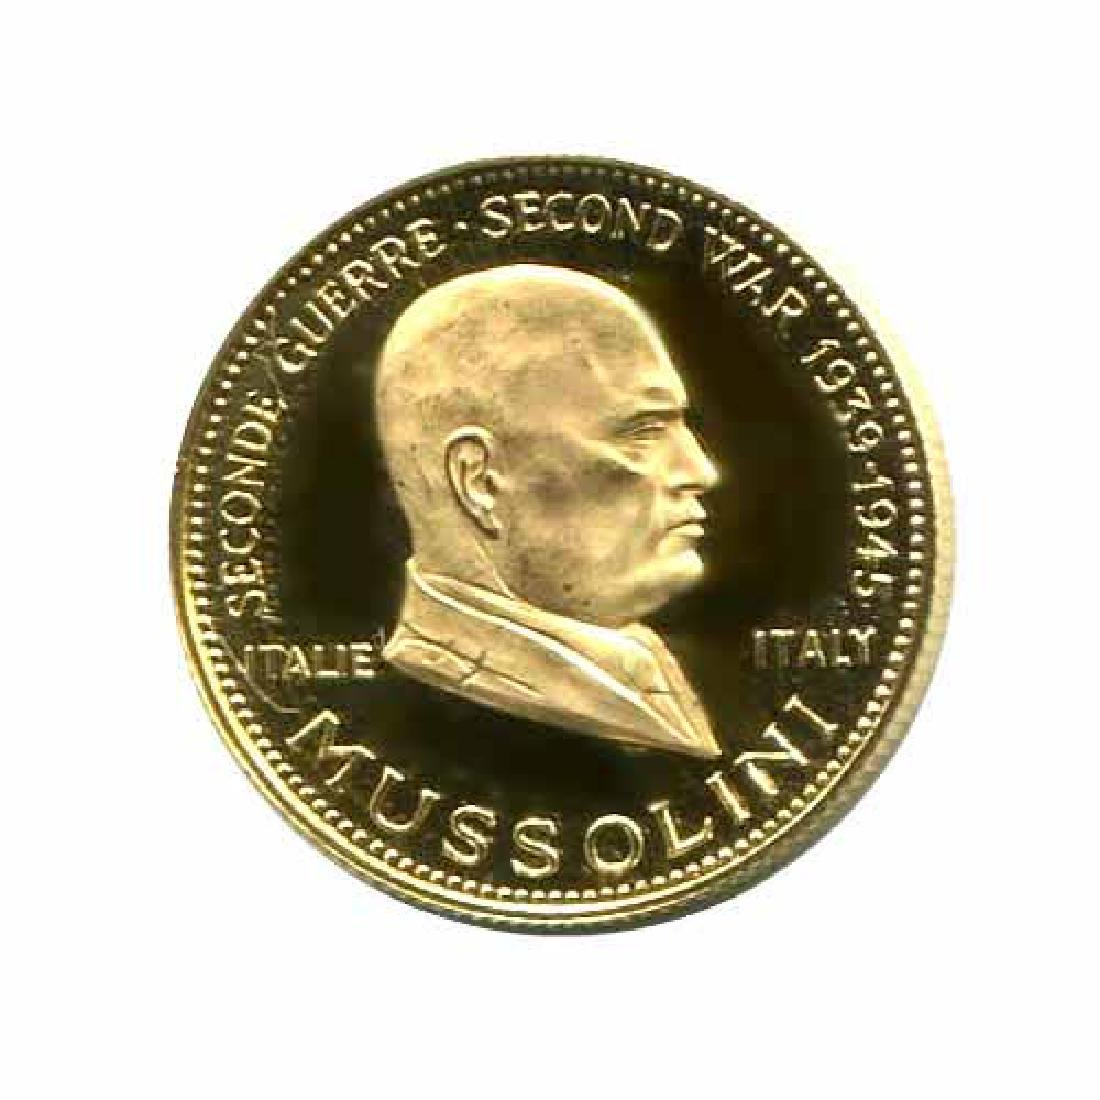 WWII Commemorative Proof Gold Medal 7g. 1958 Mussolini